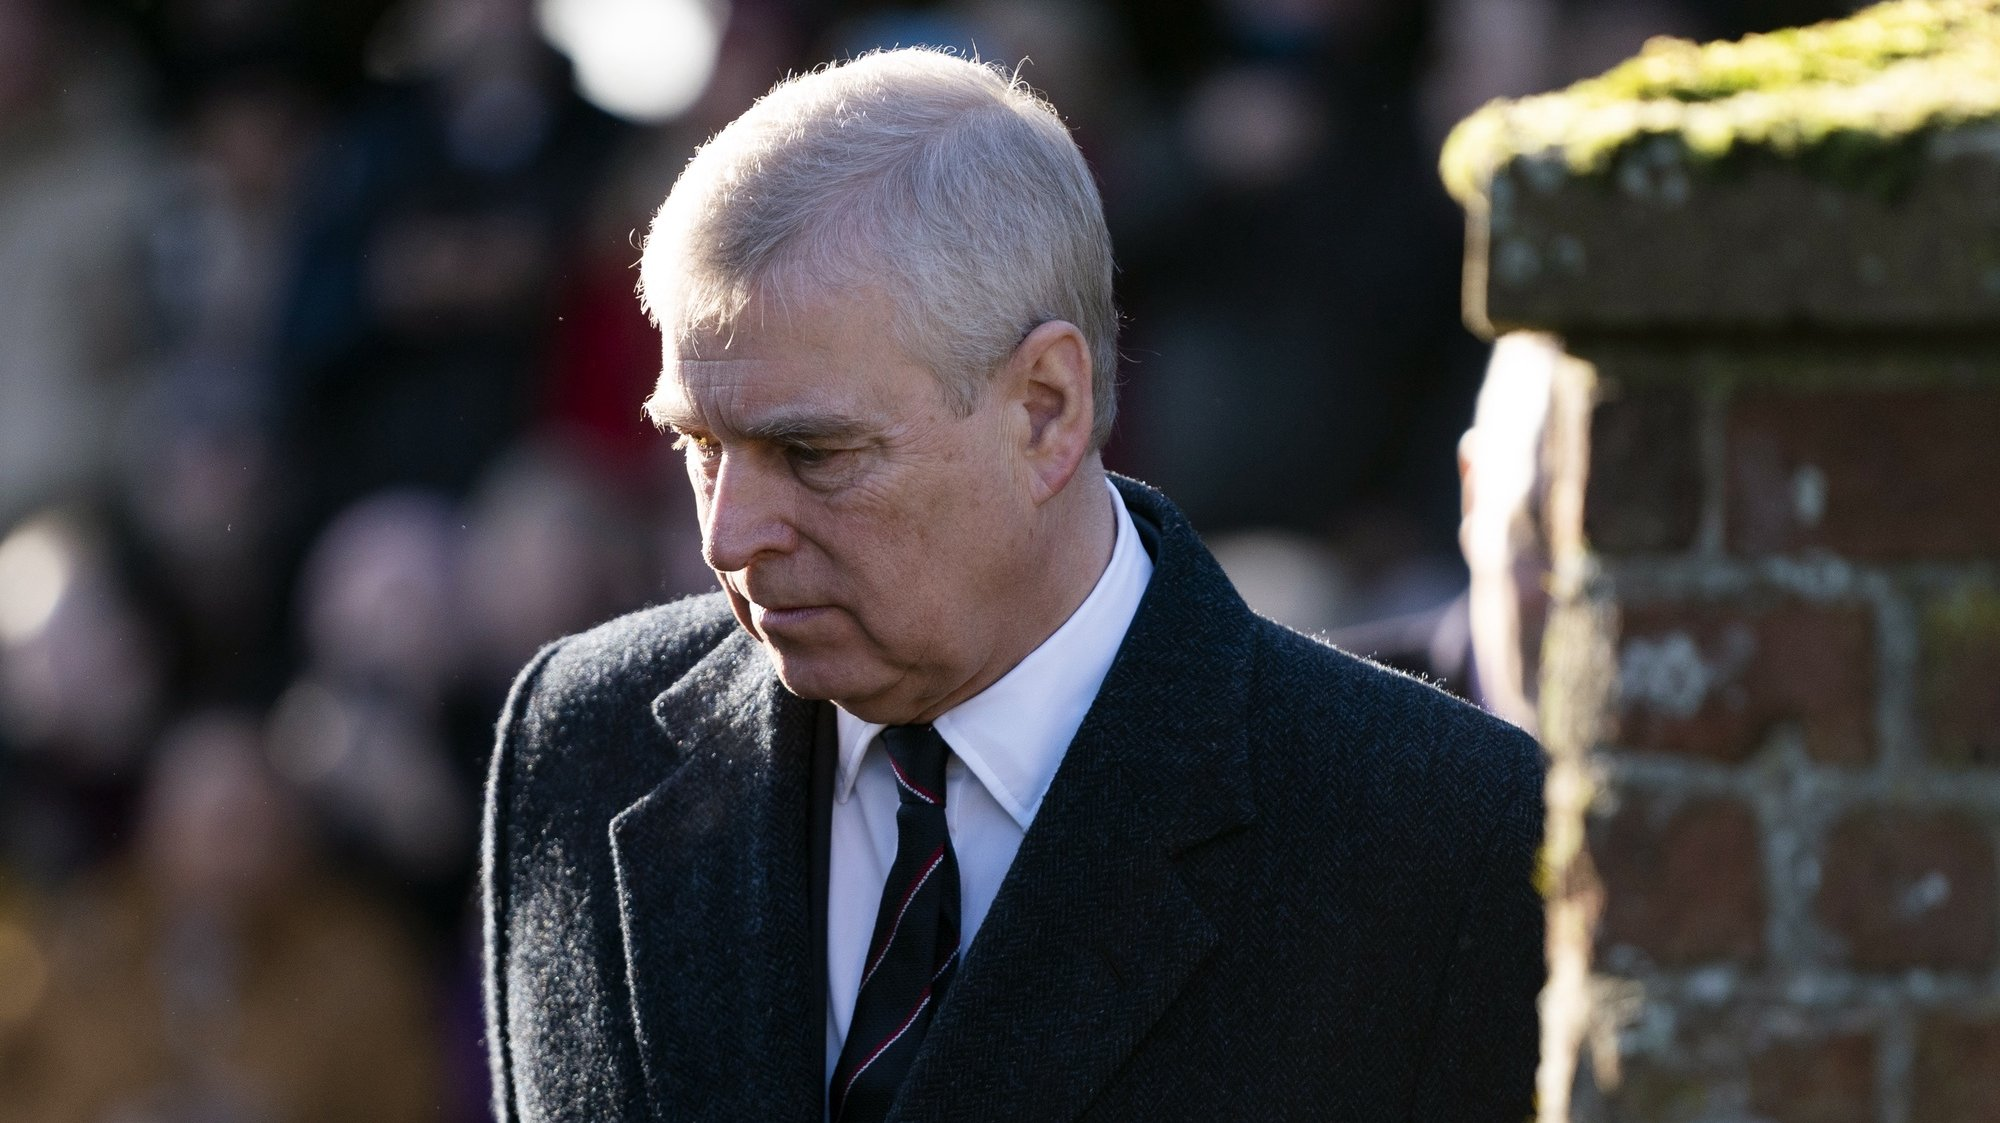 epa08760960 YEARENDER 2020  PERSONALITIES  Britain's Prince Andrew, Duke of York arrives for a church service with Queen Elizabeth II (unseen) at St Mary the Virgin in Hillington, Norfolk, Britain, 19 January 2020. Prince Andrew had been asked by US authorities to testify in the Epstein sexual abuse case.  EPA/WILL OLIVER *** Local Caption *** 55780798